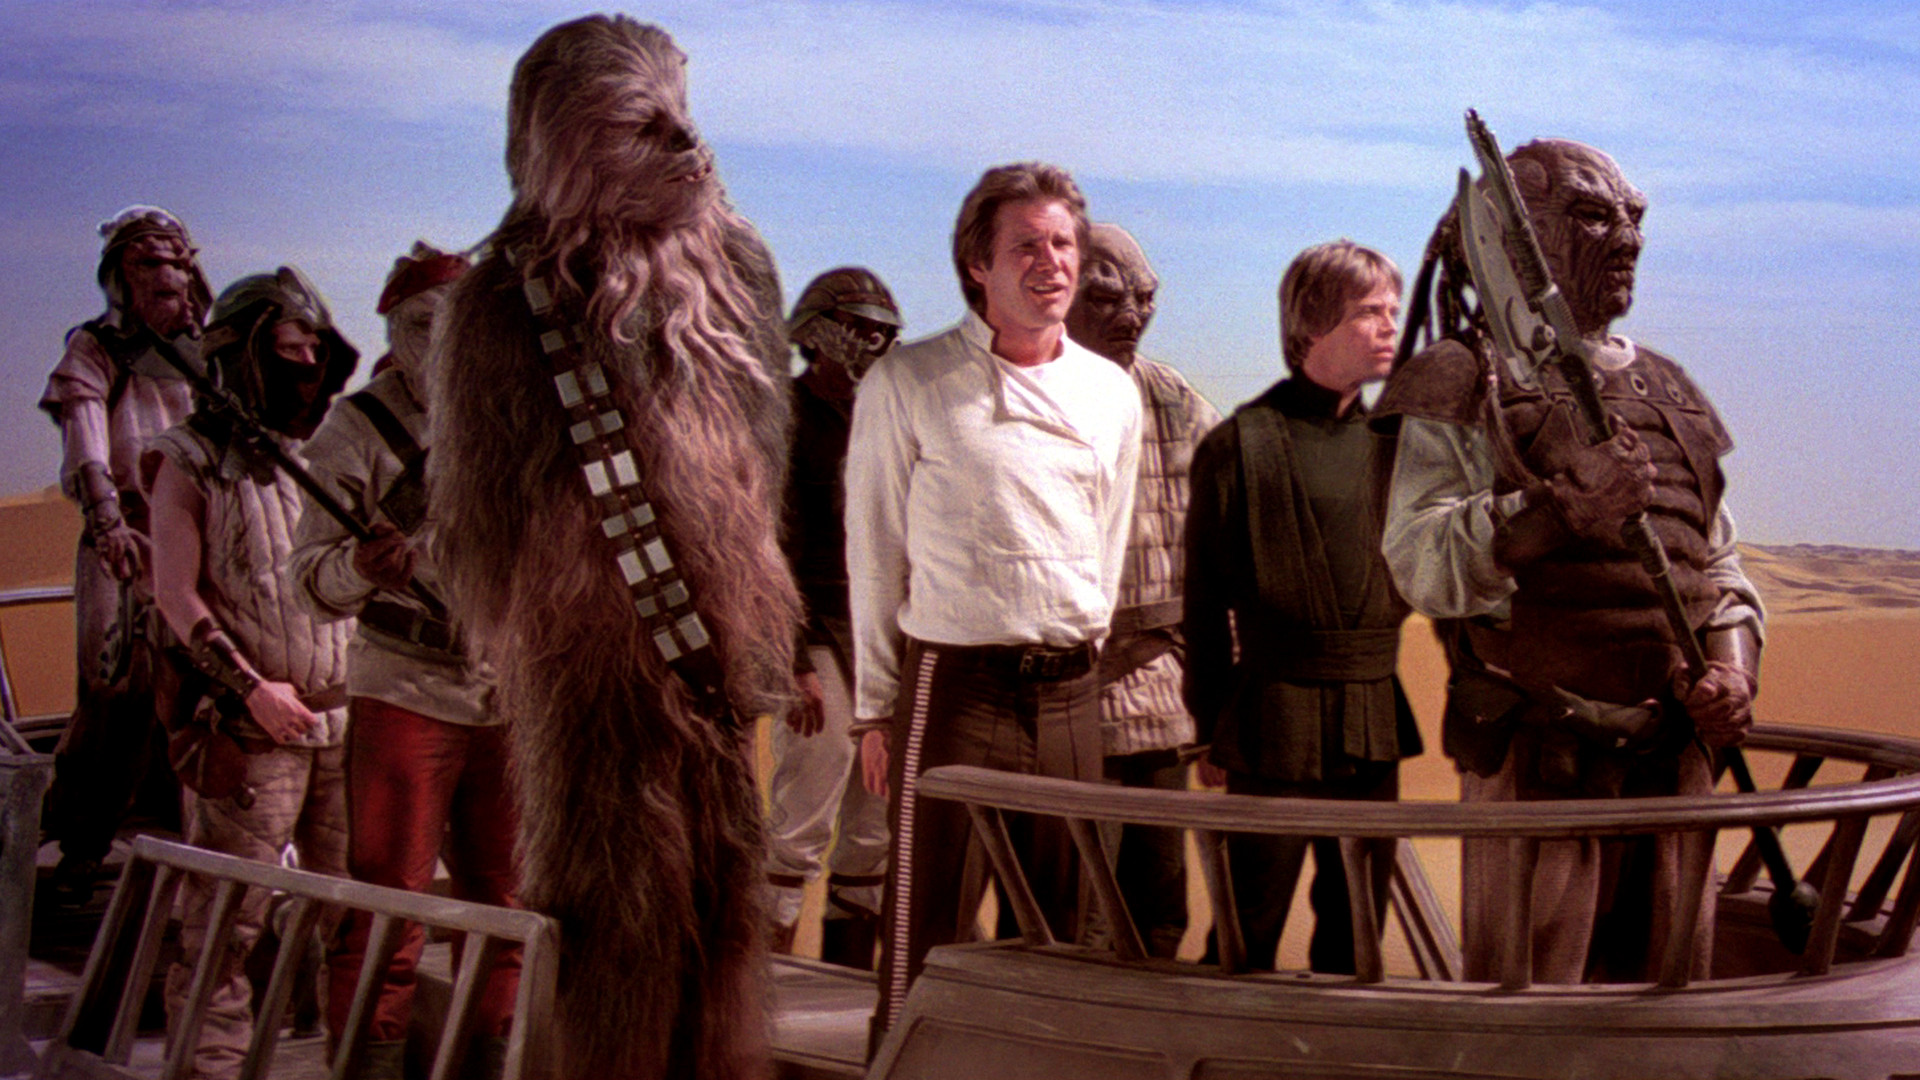 The opening of Return of the Jedi is weirder than you thought | Polygon